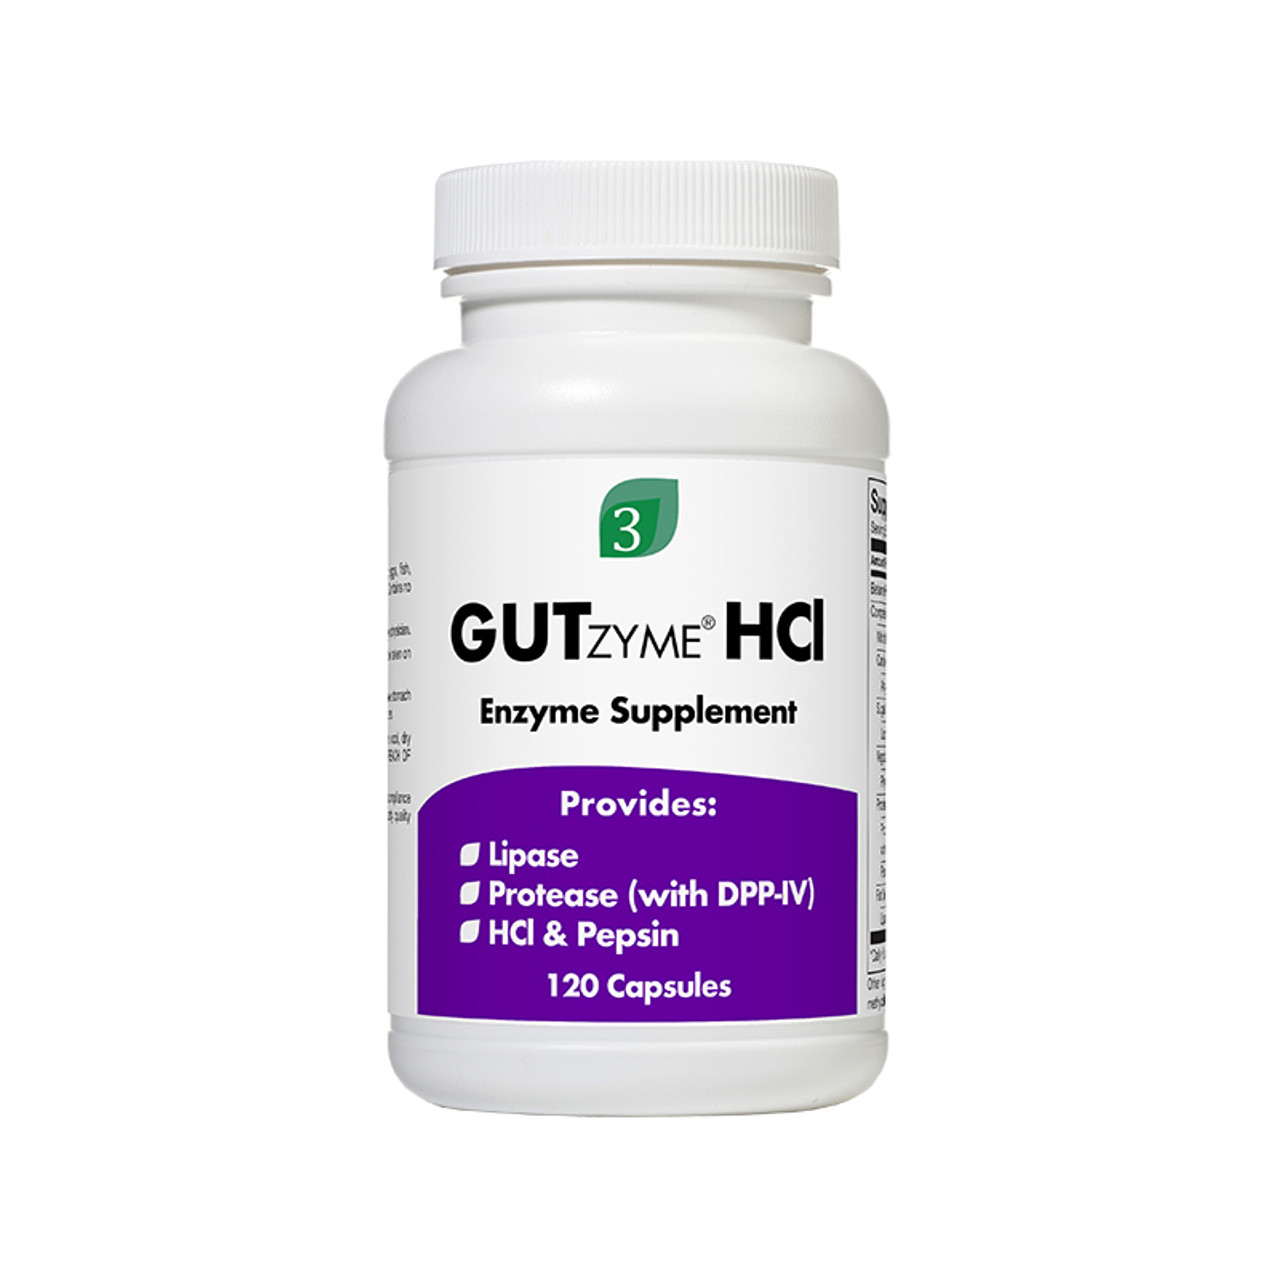 Front view of a bottle of Organic3 GutZyme HCl Digestive Enzyme supplement.